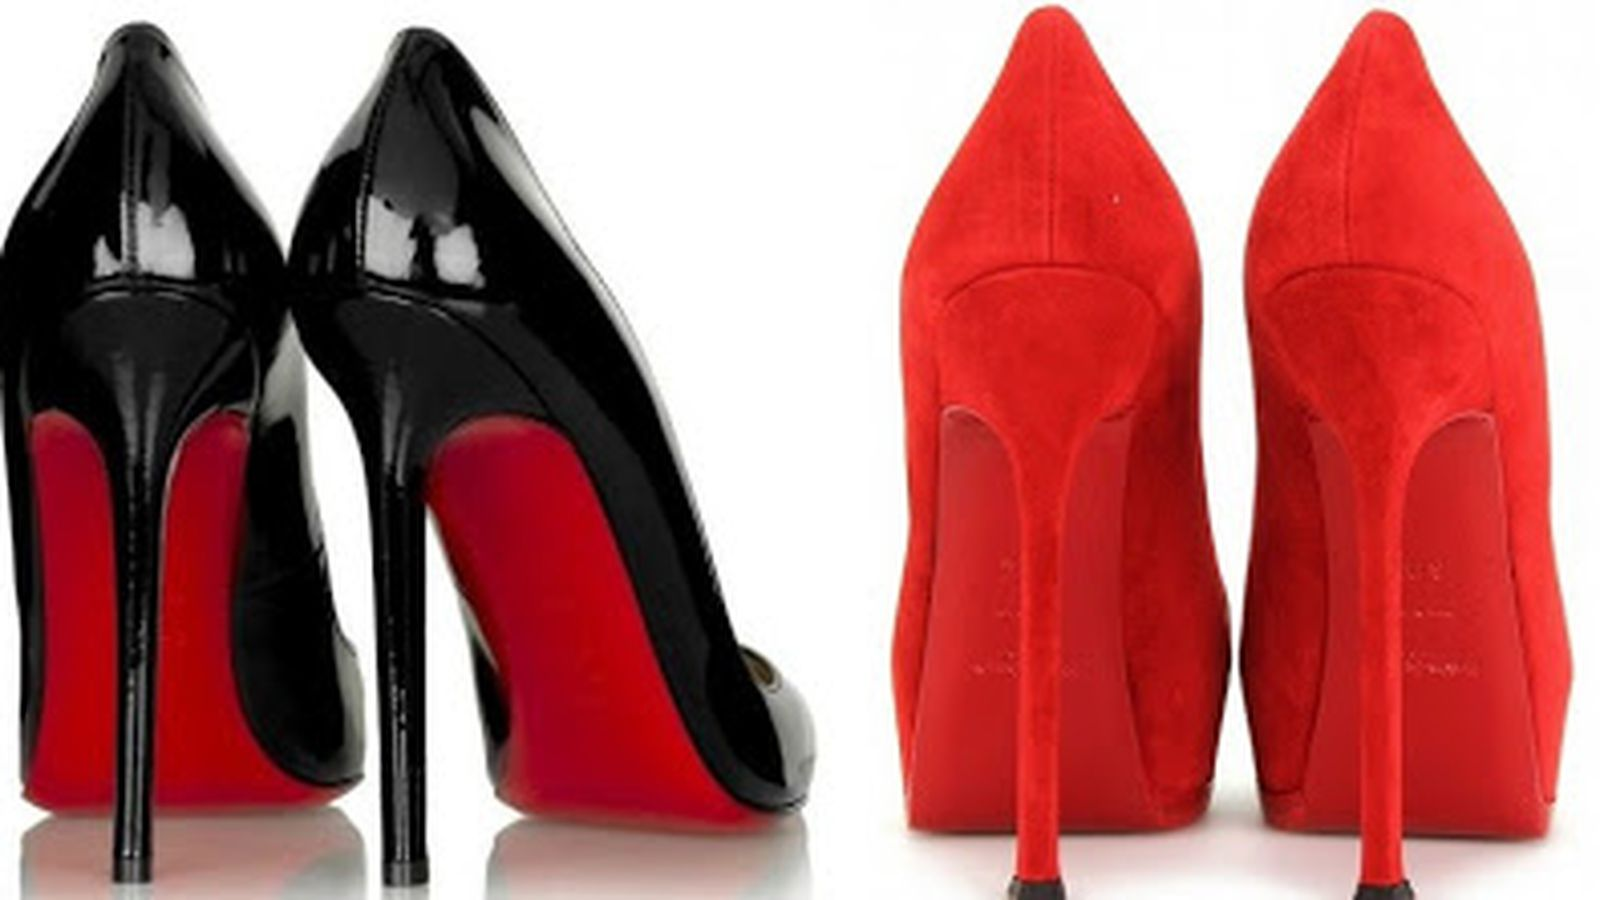 7d0a771ec9f The 10 Most Infamous Footwear Lawsuits in High-Heeled History - Racked